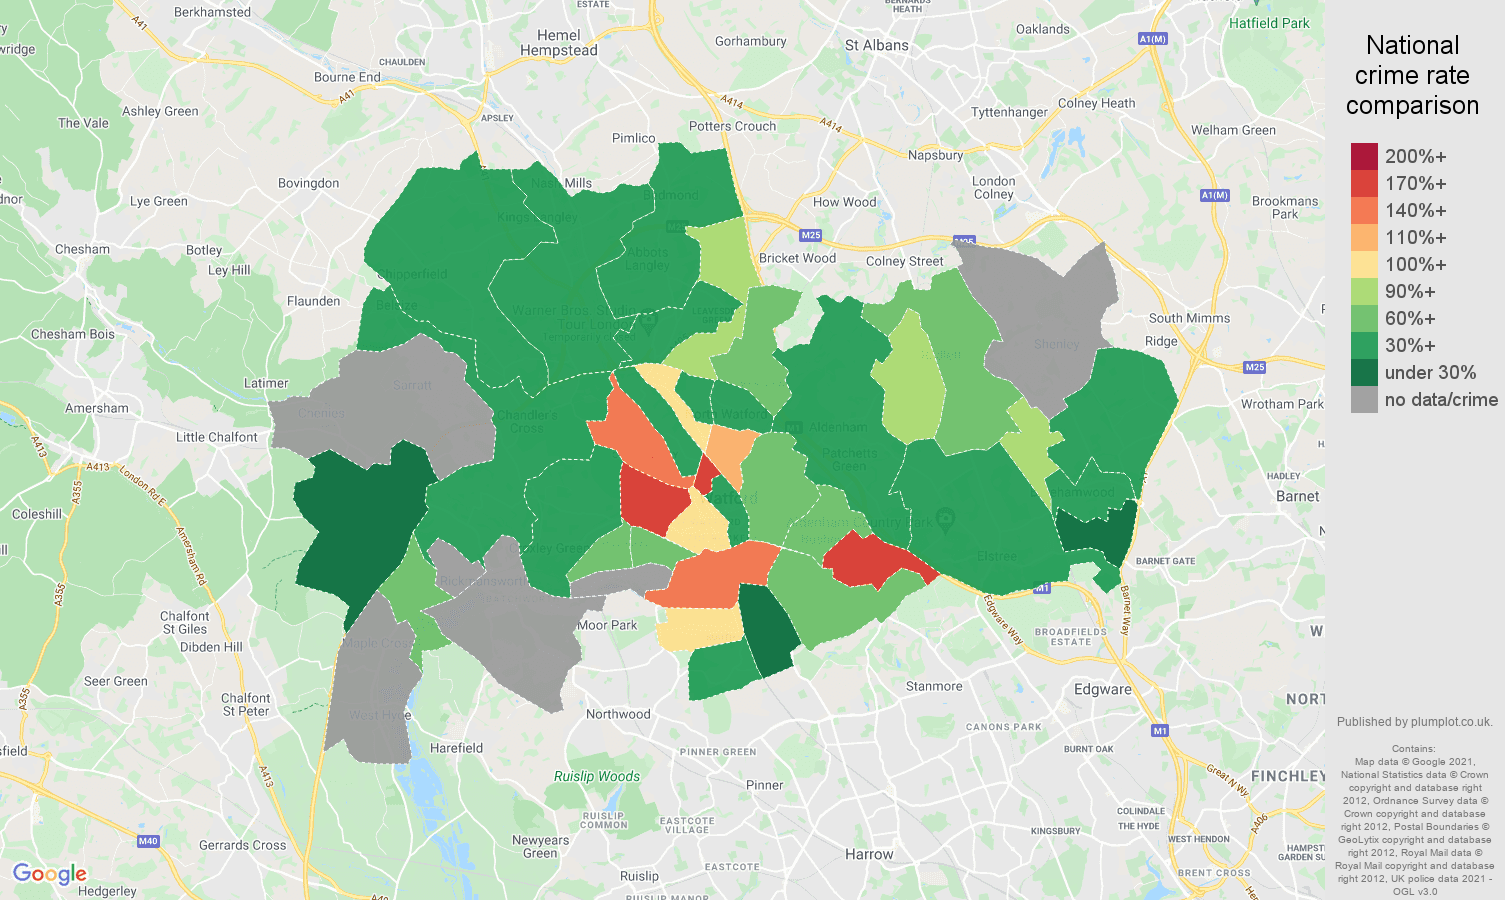 Watford robbery crime rate comparison map